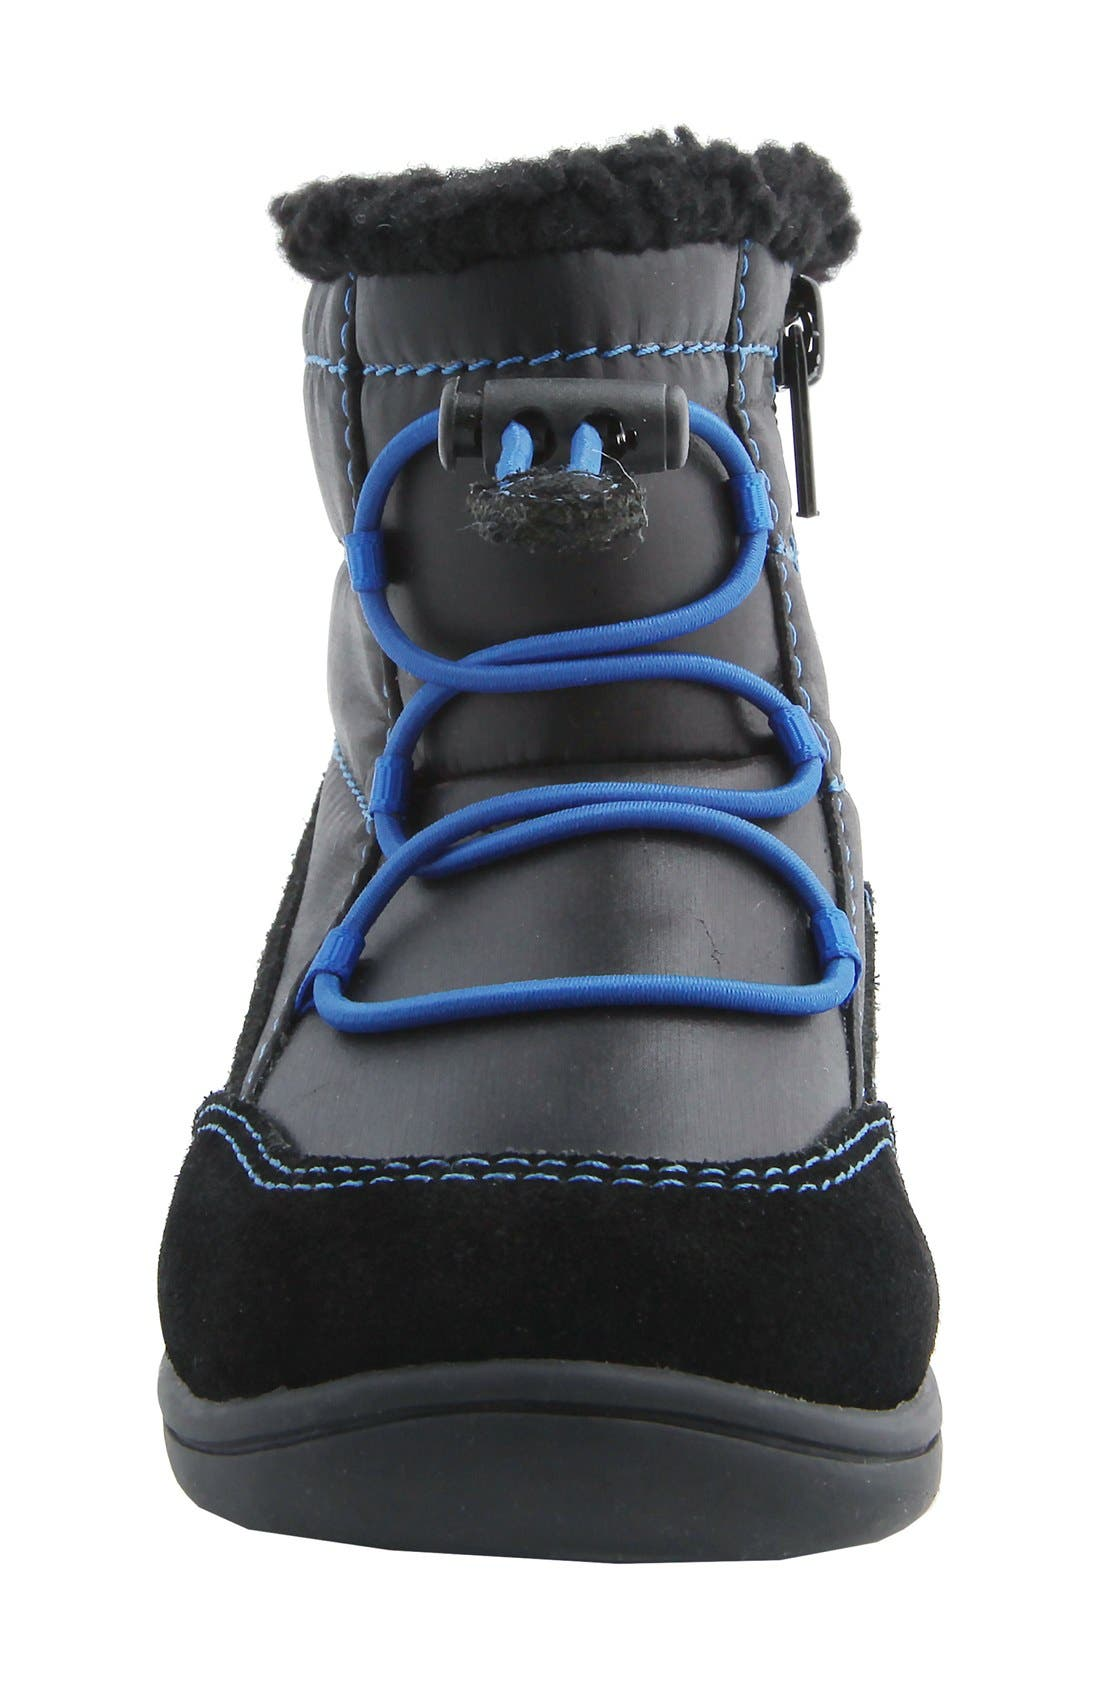 MOBILITY, Nina 'Yolie' Lace-Up Boot, Alternate thumbnail 2, color, BLACK